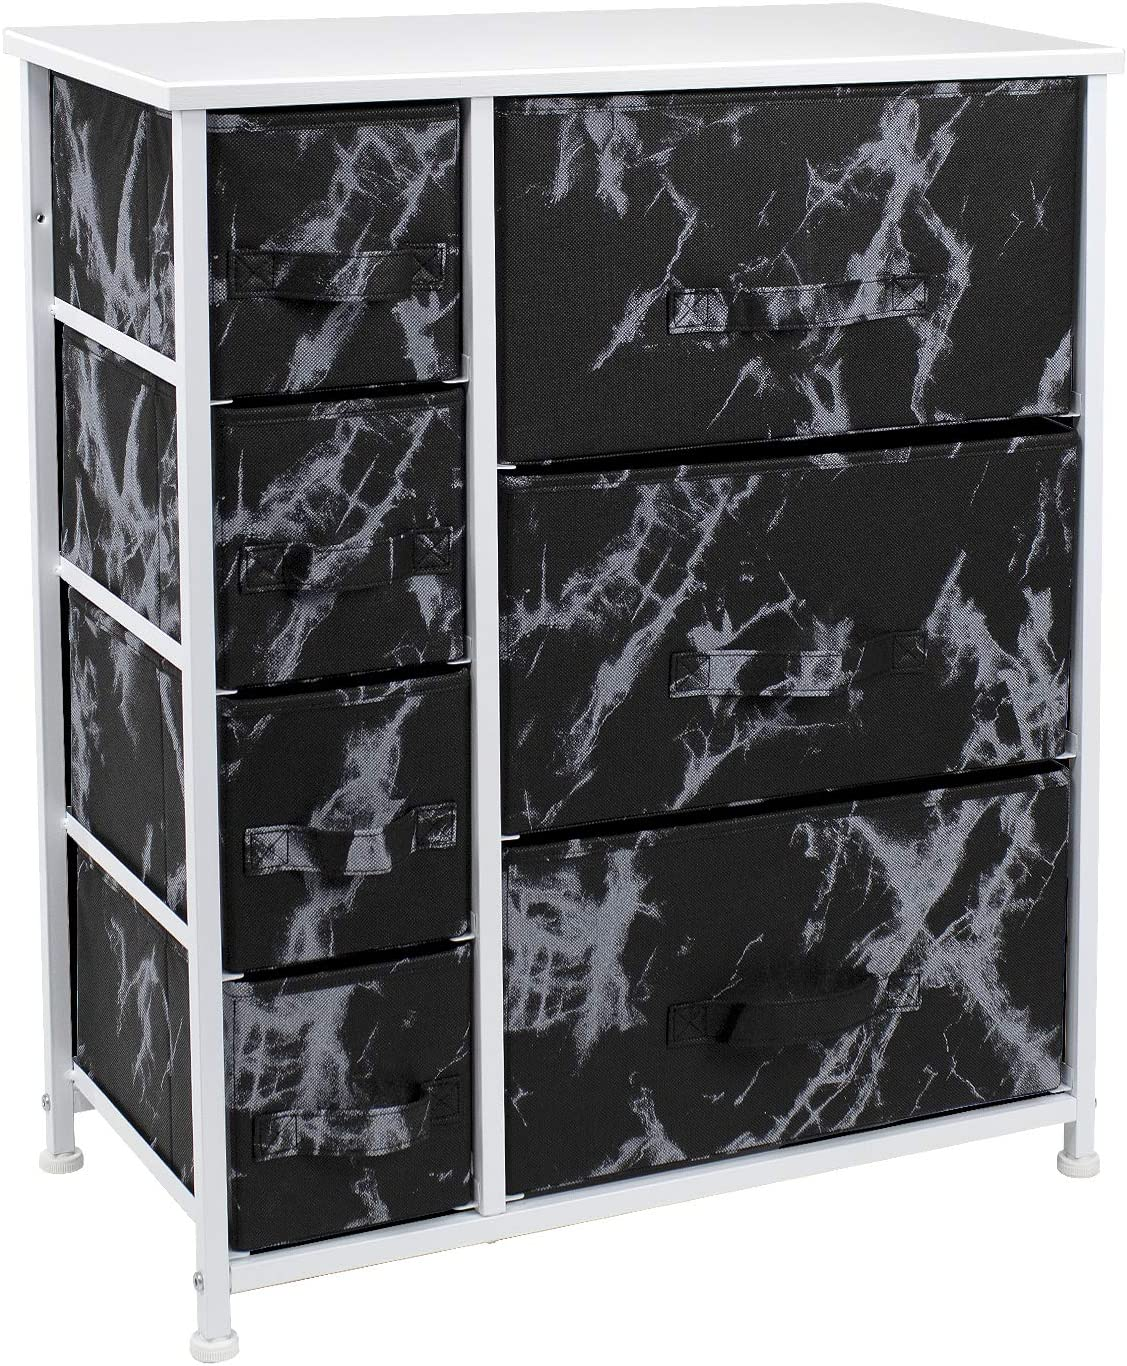 Sorbus Dresser with Drawers - Furniture Storage Tower Unit for Bedroom, Hallway, Closet, Office Organization - Steel Frame, Wood Top, Easy Pull Fabric Bins (Marble Black/White Frame)